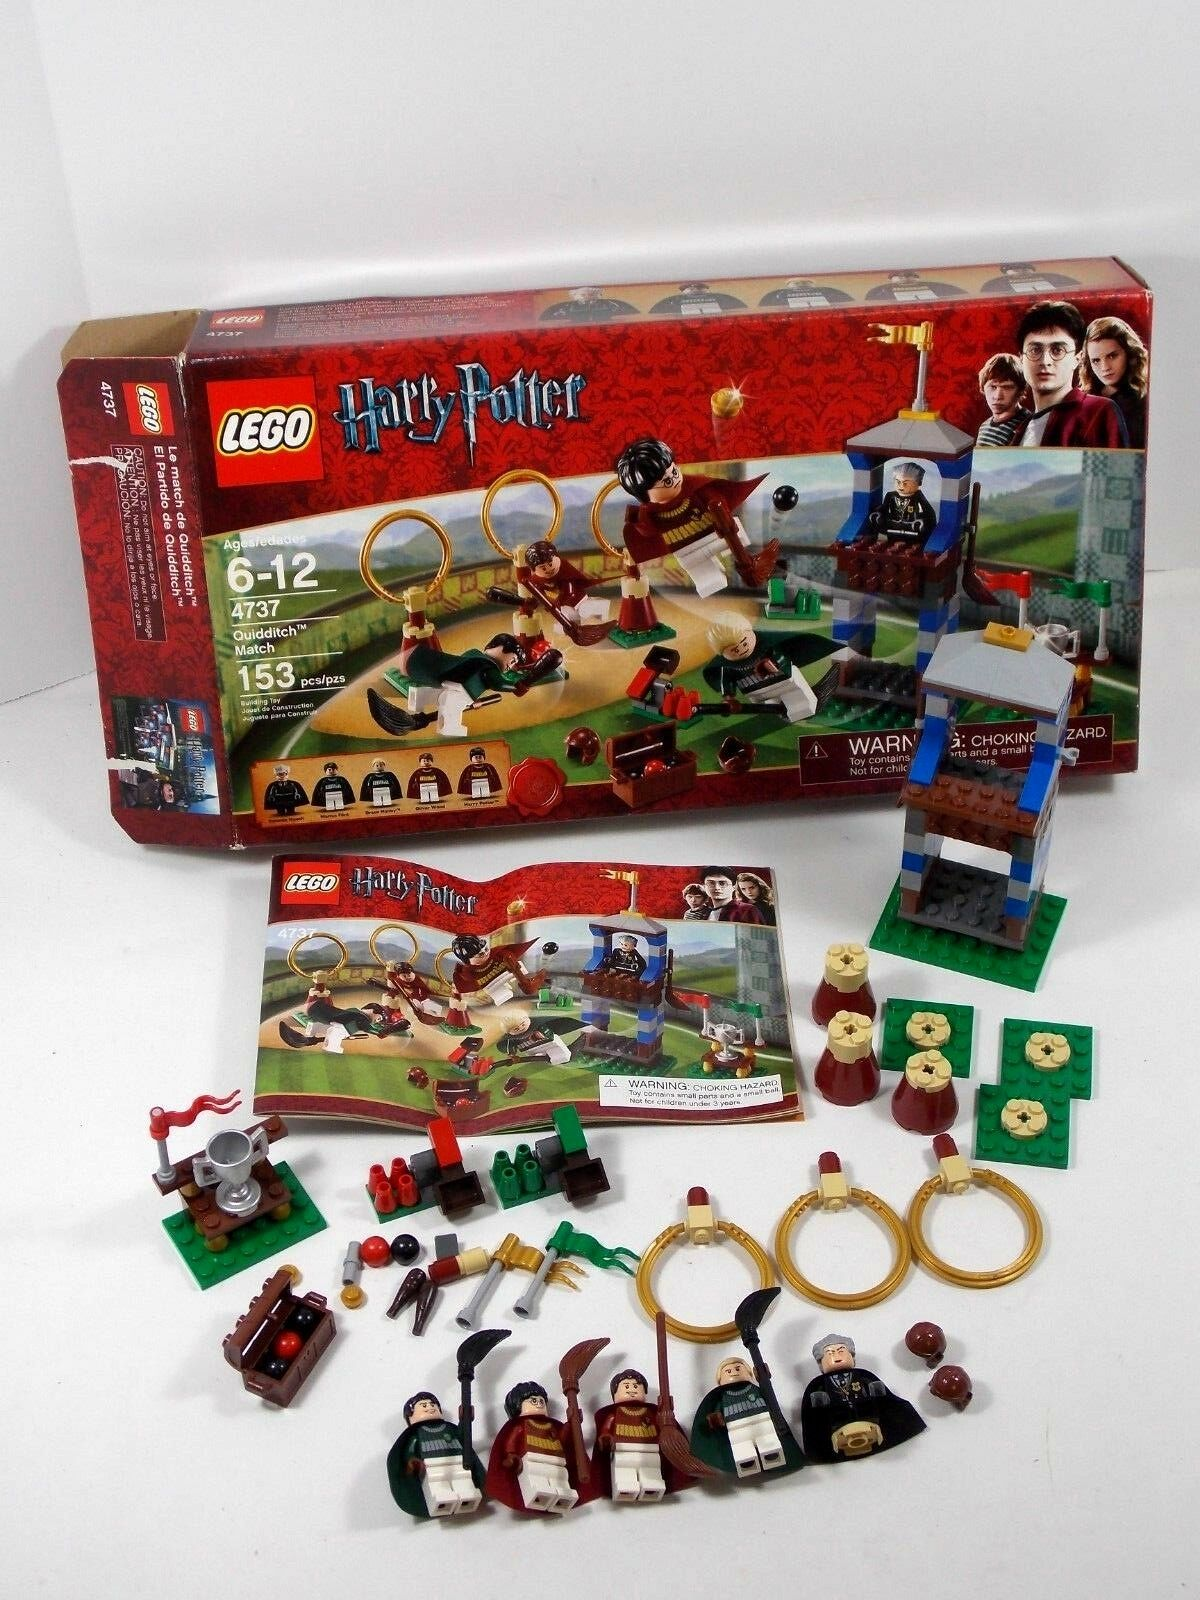 LEGO HARRY POTTER QUIDDITCH MATCH RETIROT BUILDING SET 4737 IN BOX